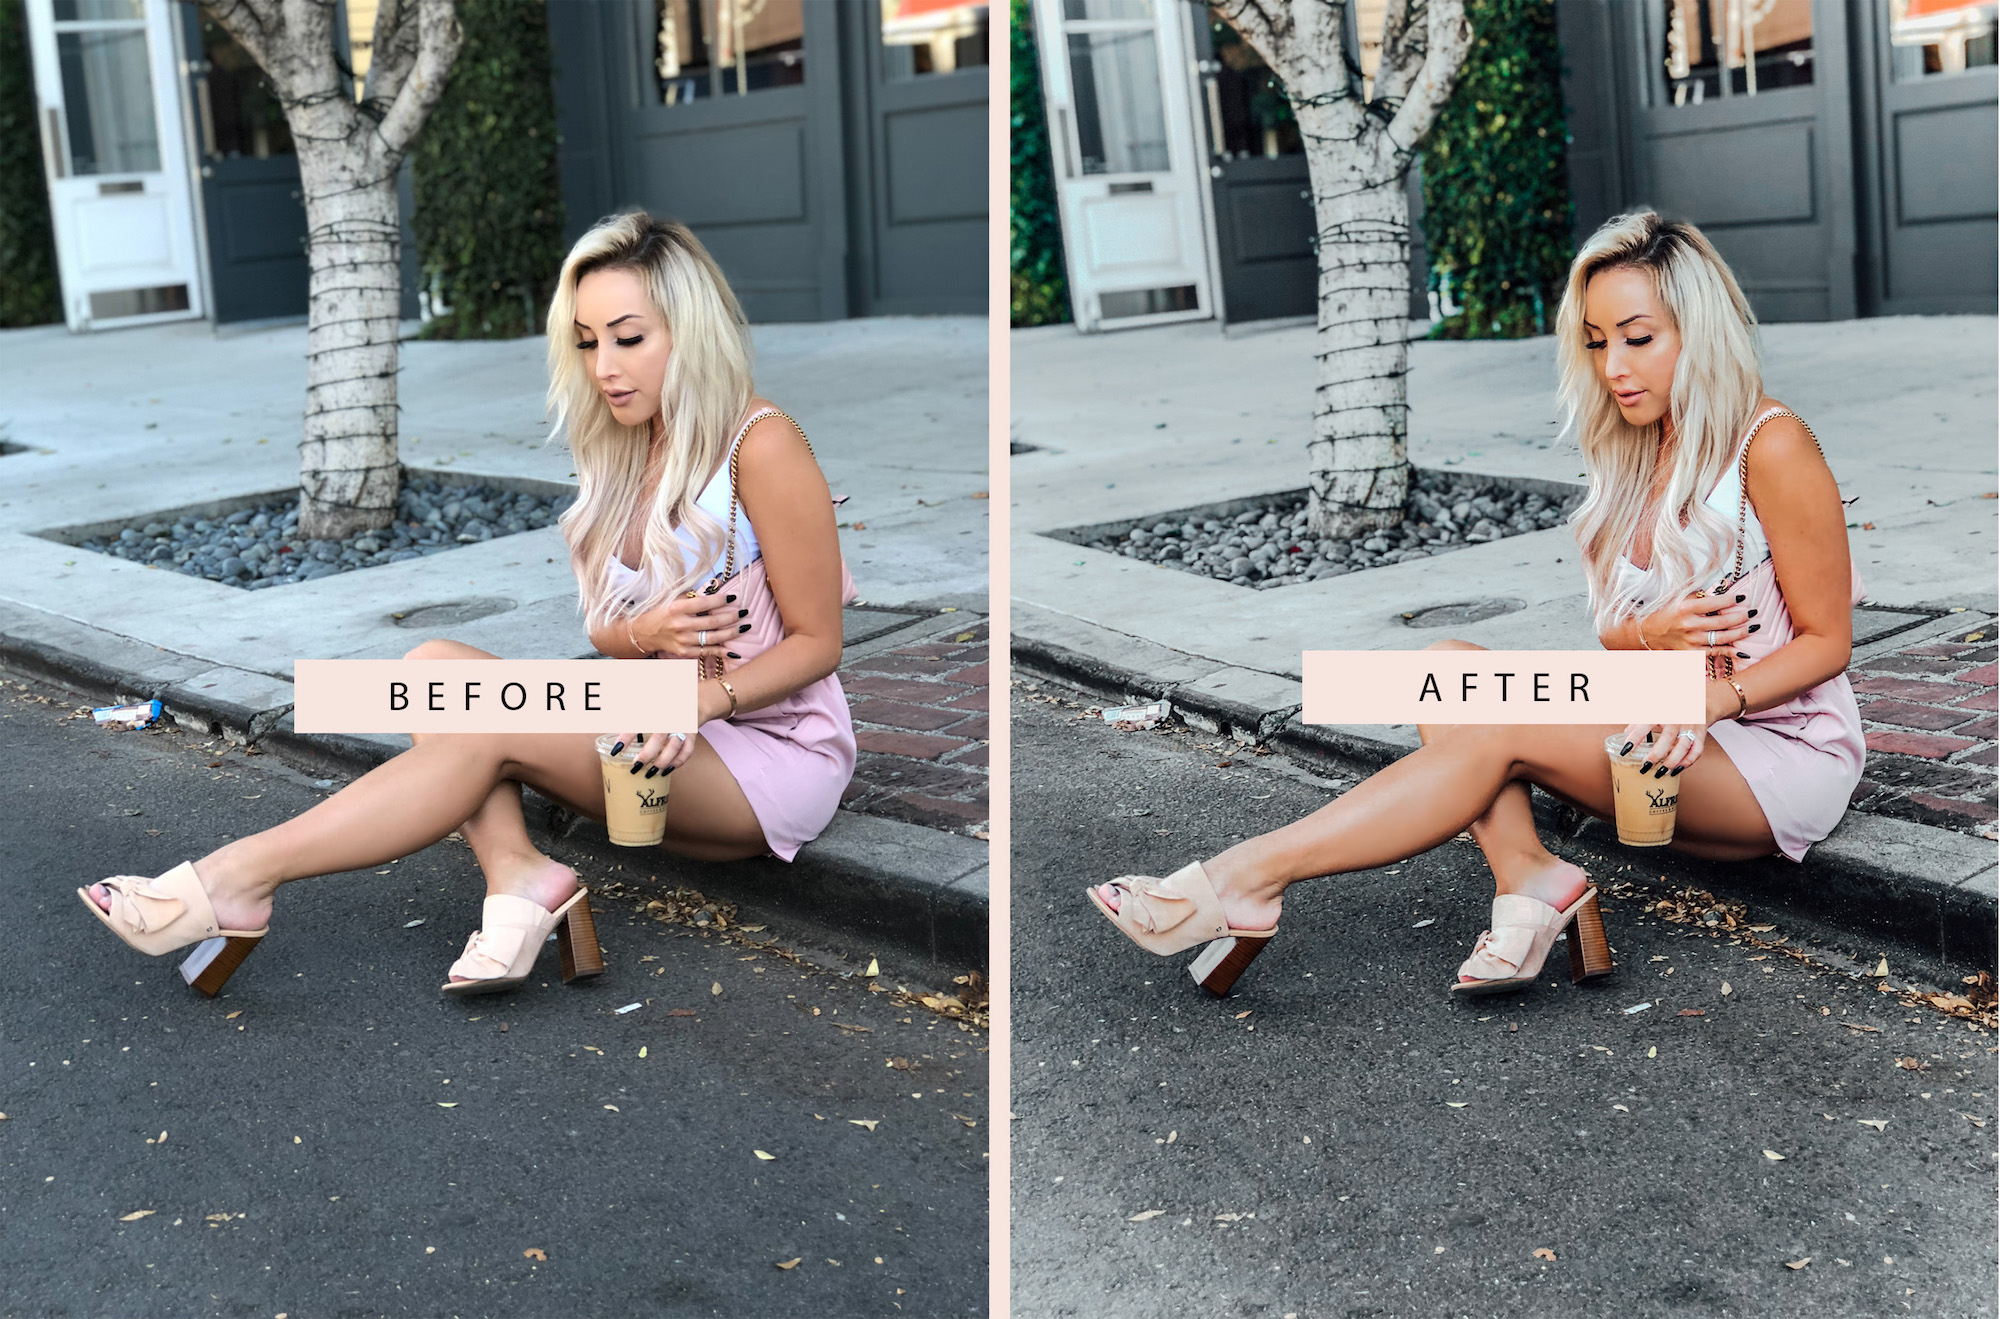 Lightroom Presets | How I Edit My Instagram Photos | Instagram Filters | Blondie in the City